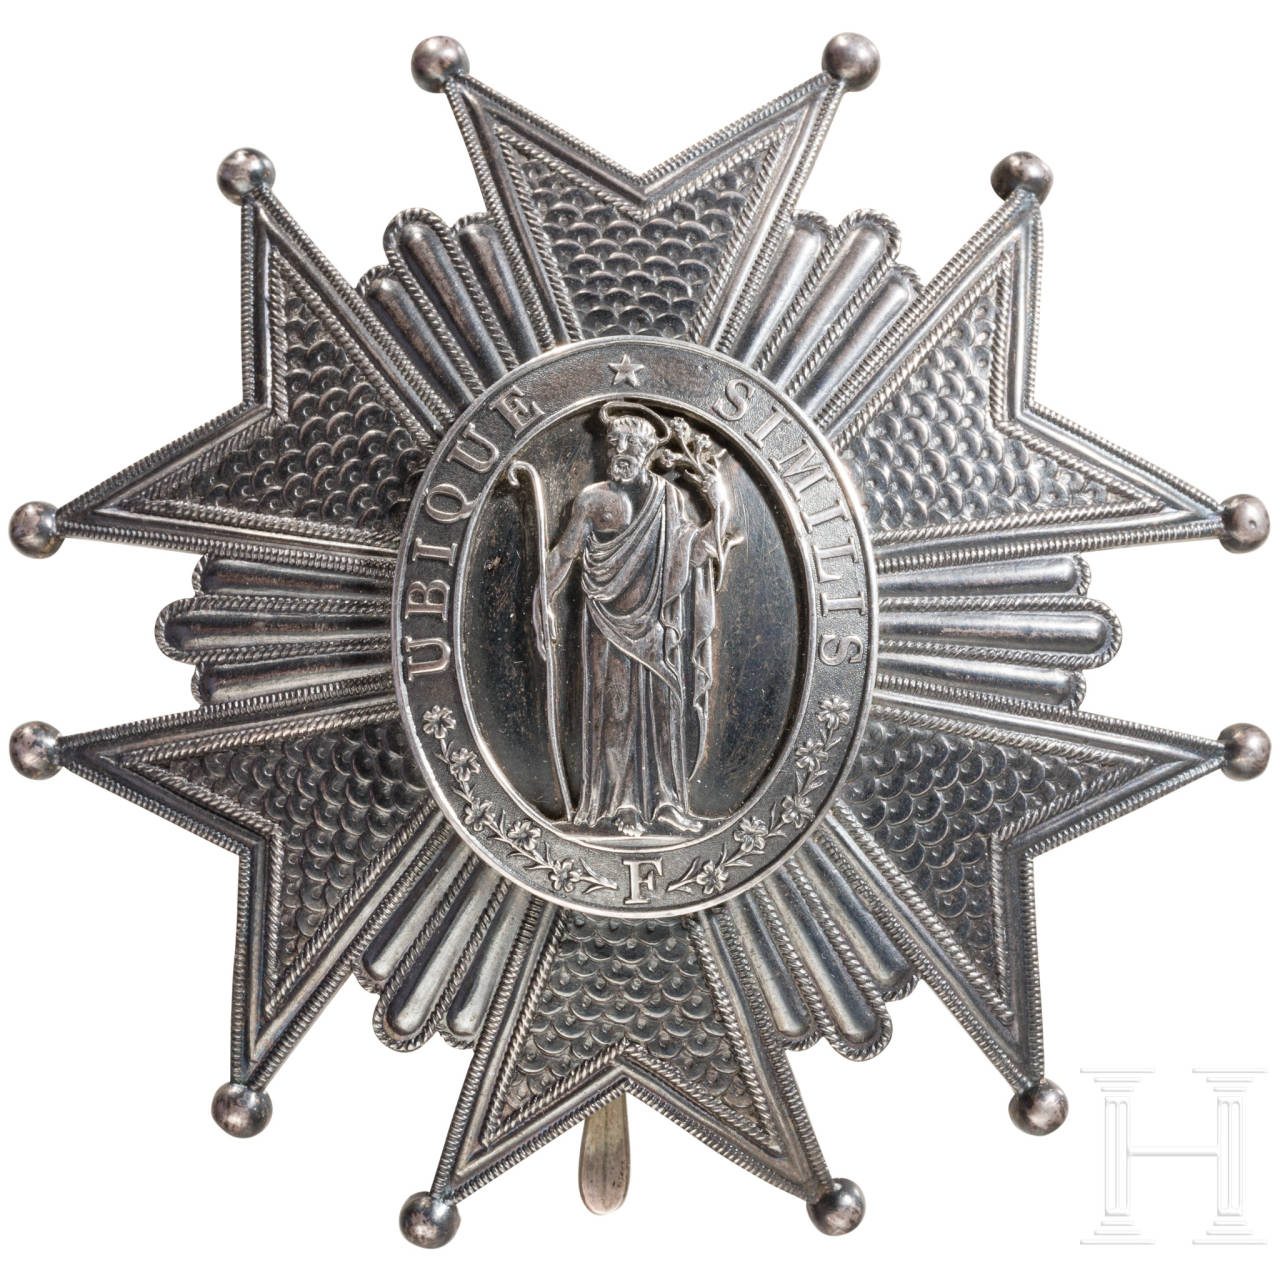 Order of Merit of St. Joseph, Tuscany, breast star to the Grand Cross, French production by Lemaitre in Paris